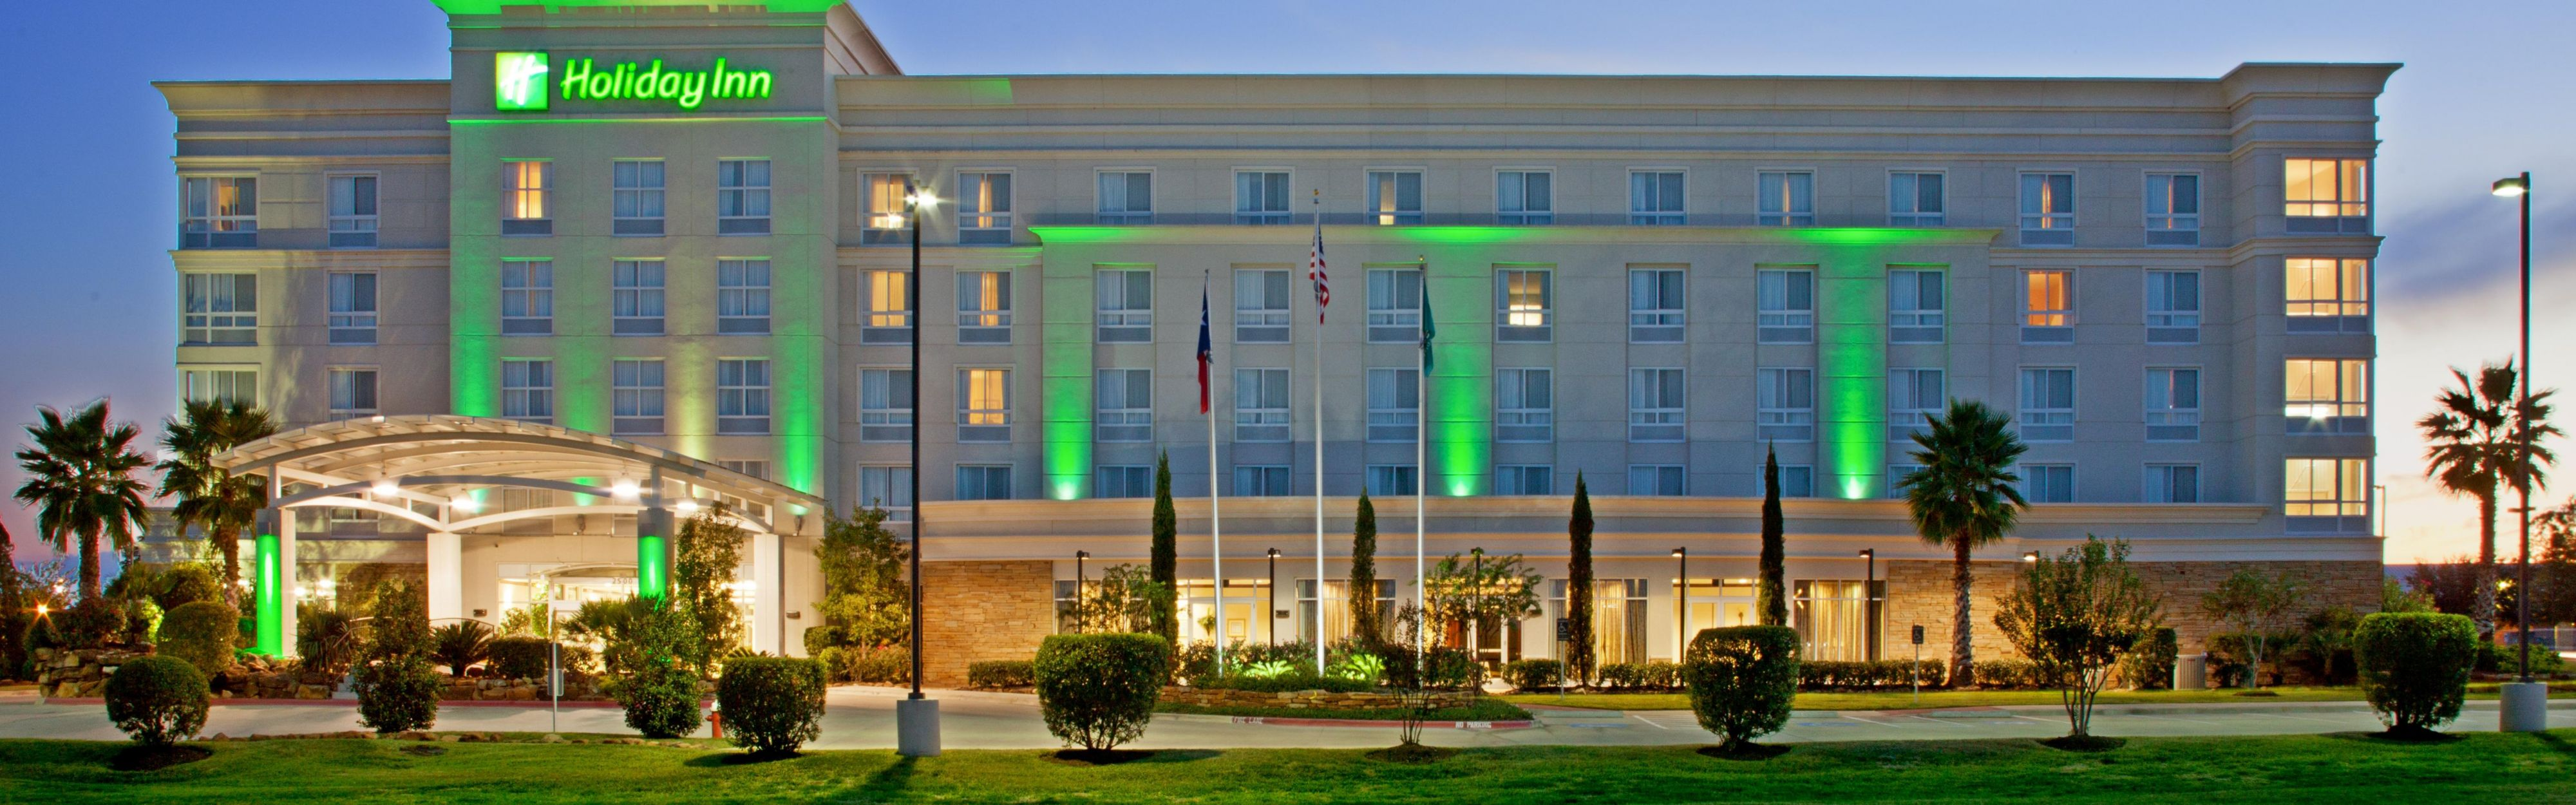 Holiday Inn College Station-Aggieland image 0